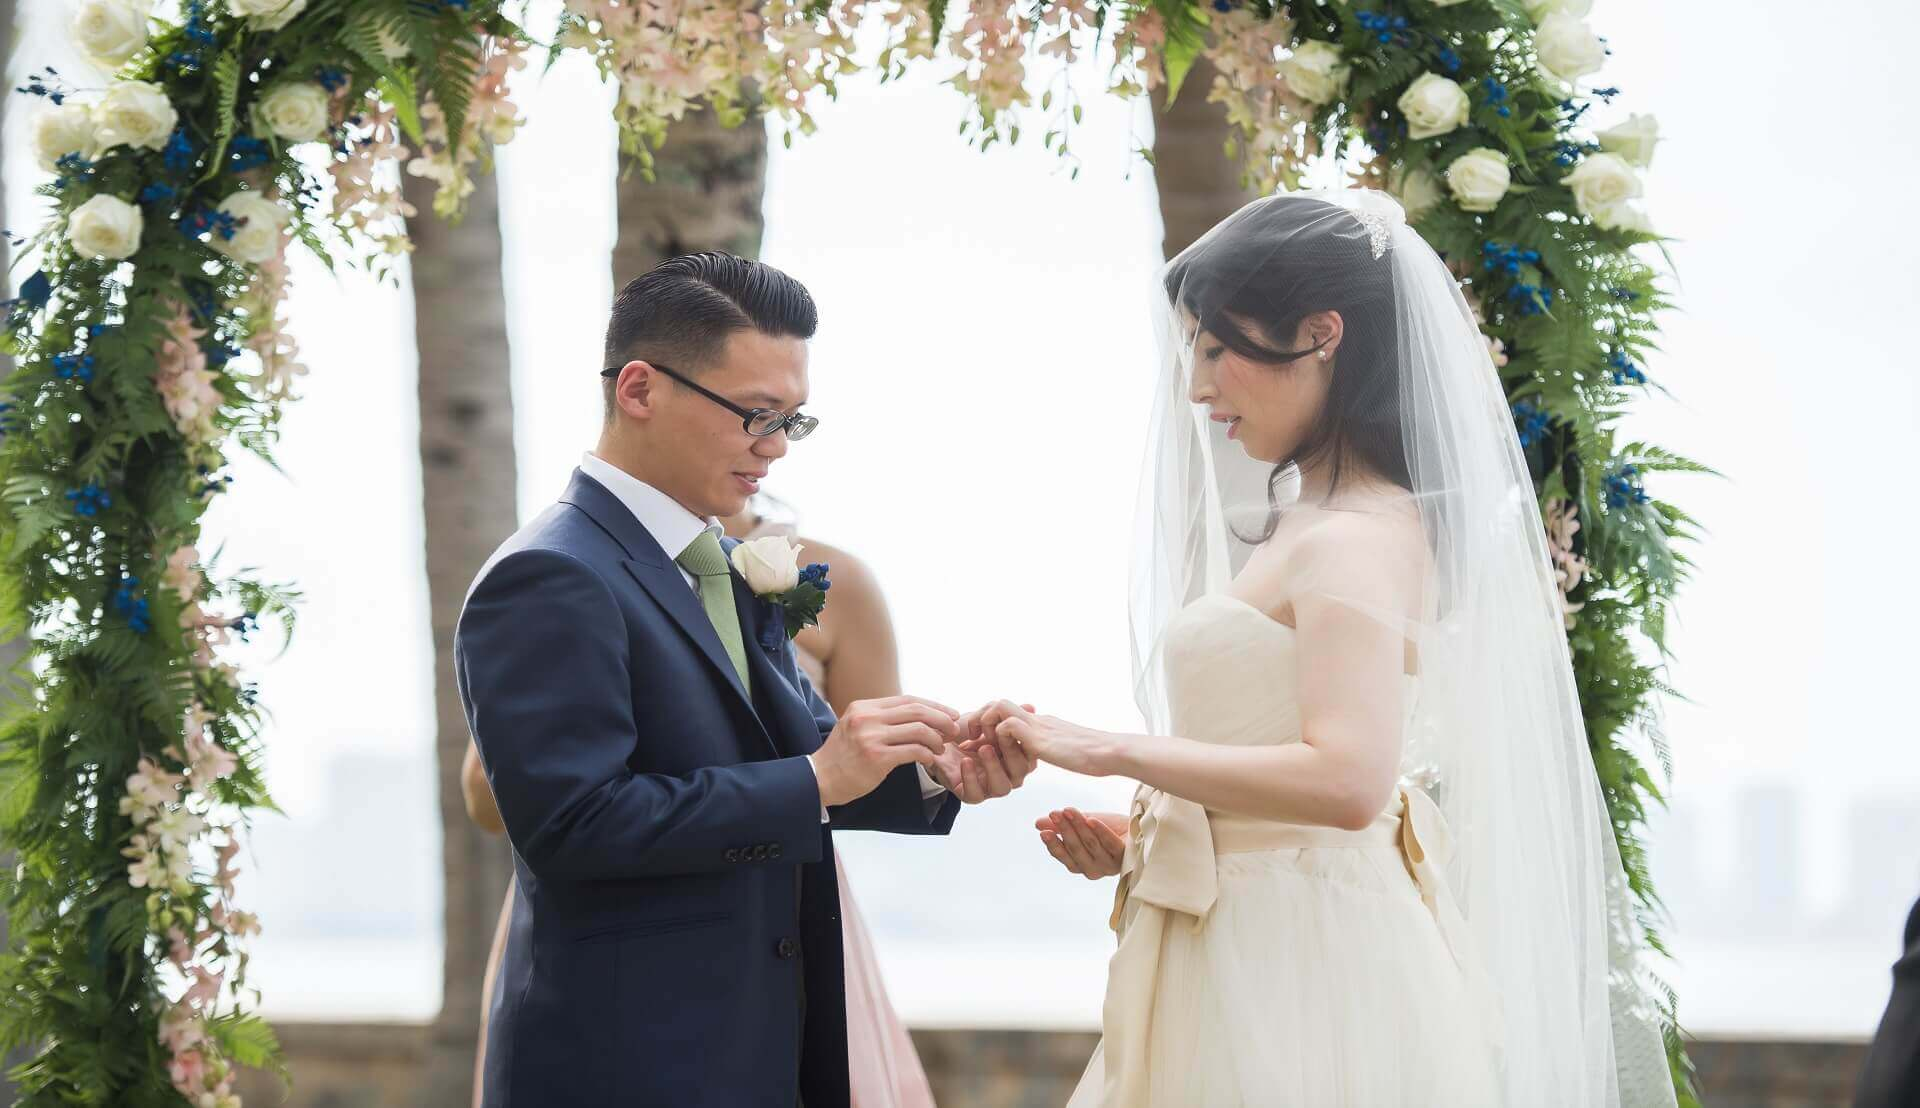 Sugar & Spice Events - Couple exchange wedding ring in the ceremony